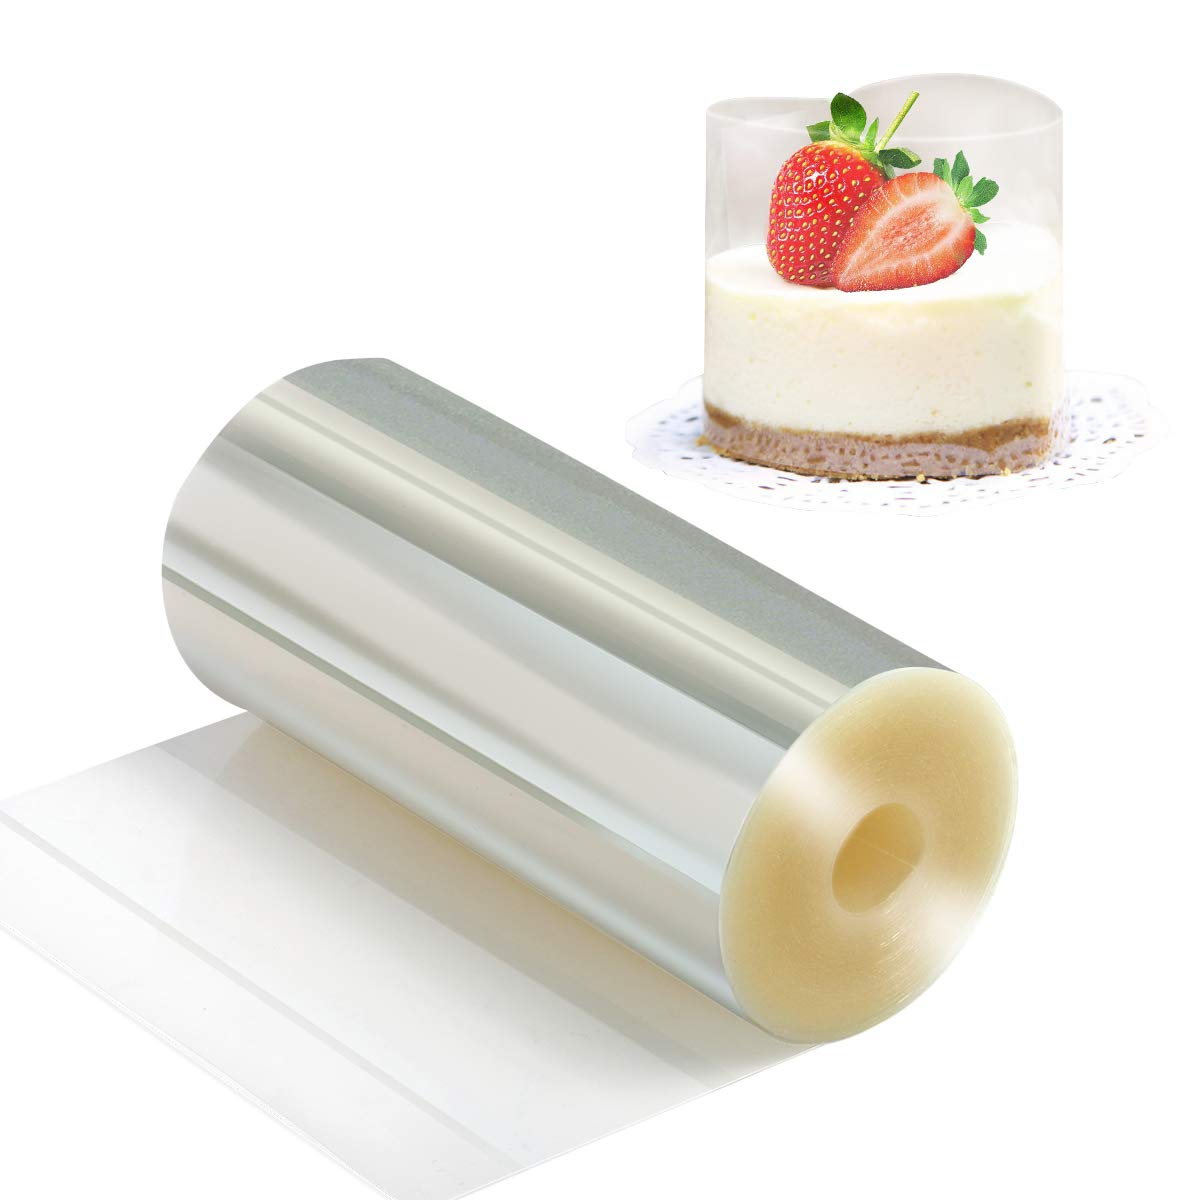 Cake Collars 4 x 394inch, Picowe Acetate Rolls, Clear Cake Strips, Transparent Cake Rolls, Mousse Cake Acetate Sheets for Chocolate Mousse Baking, Cake Decorating by Picowe